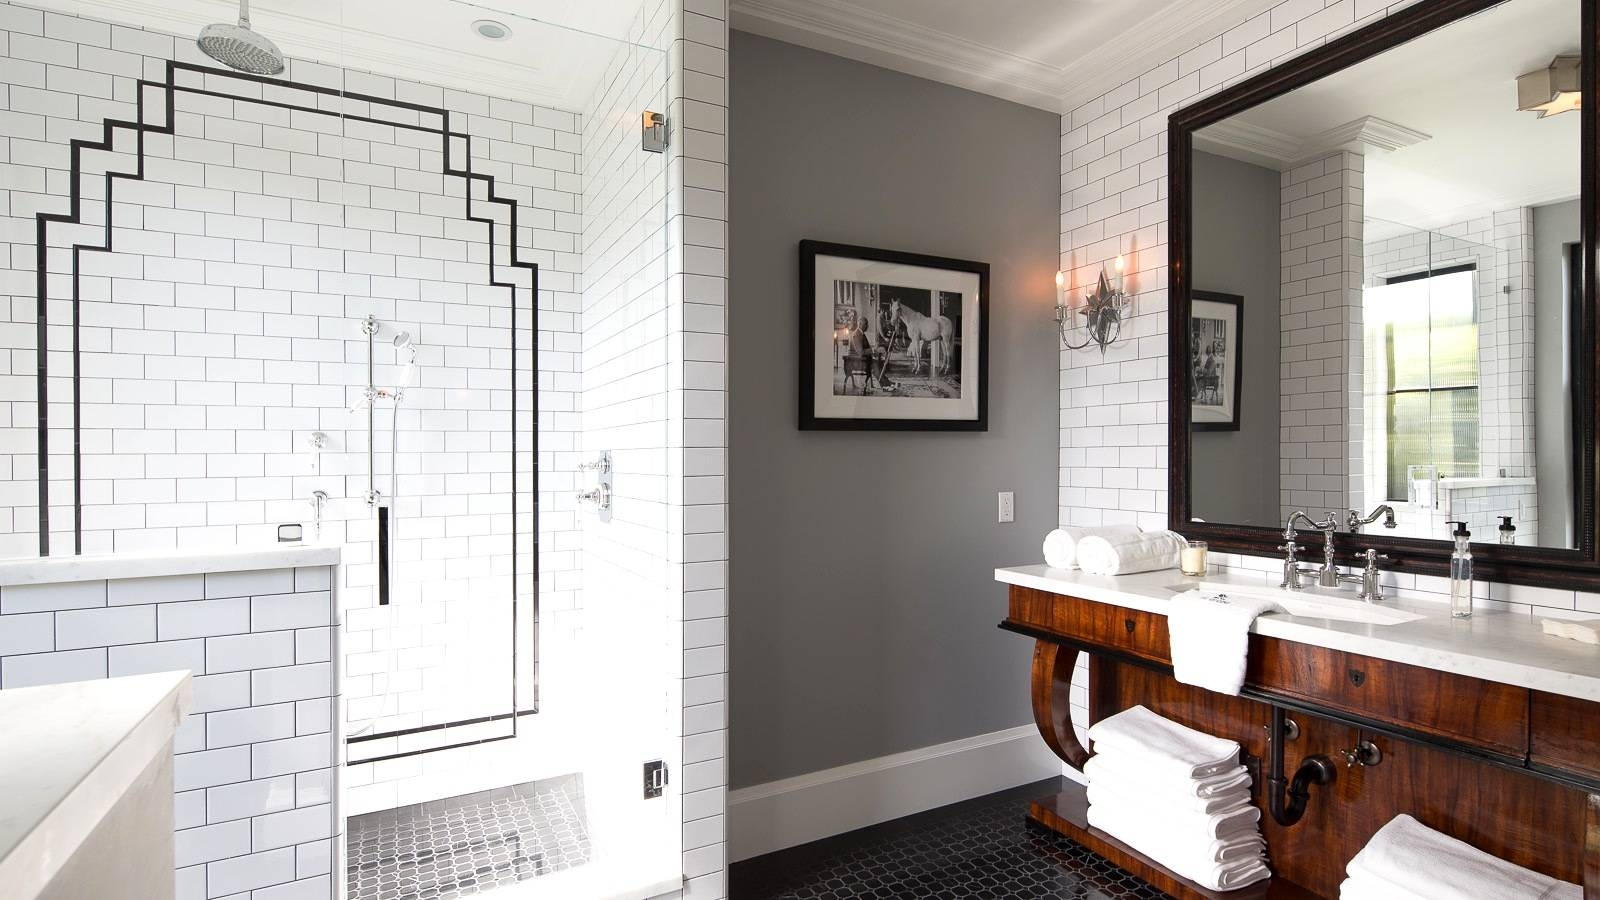 Bathroom. Modern Bathroom Art Deco Architecture Interior throughout Art Nouveau Wall Mirrors (Image 17 of 25)